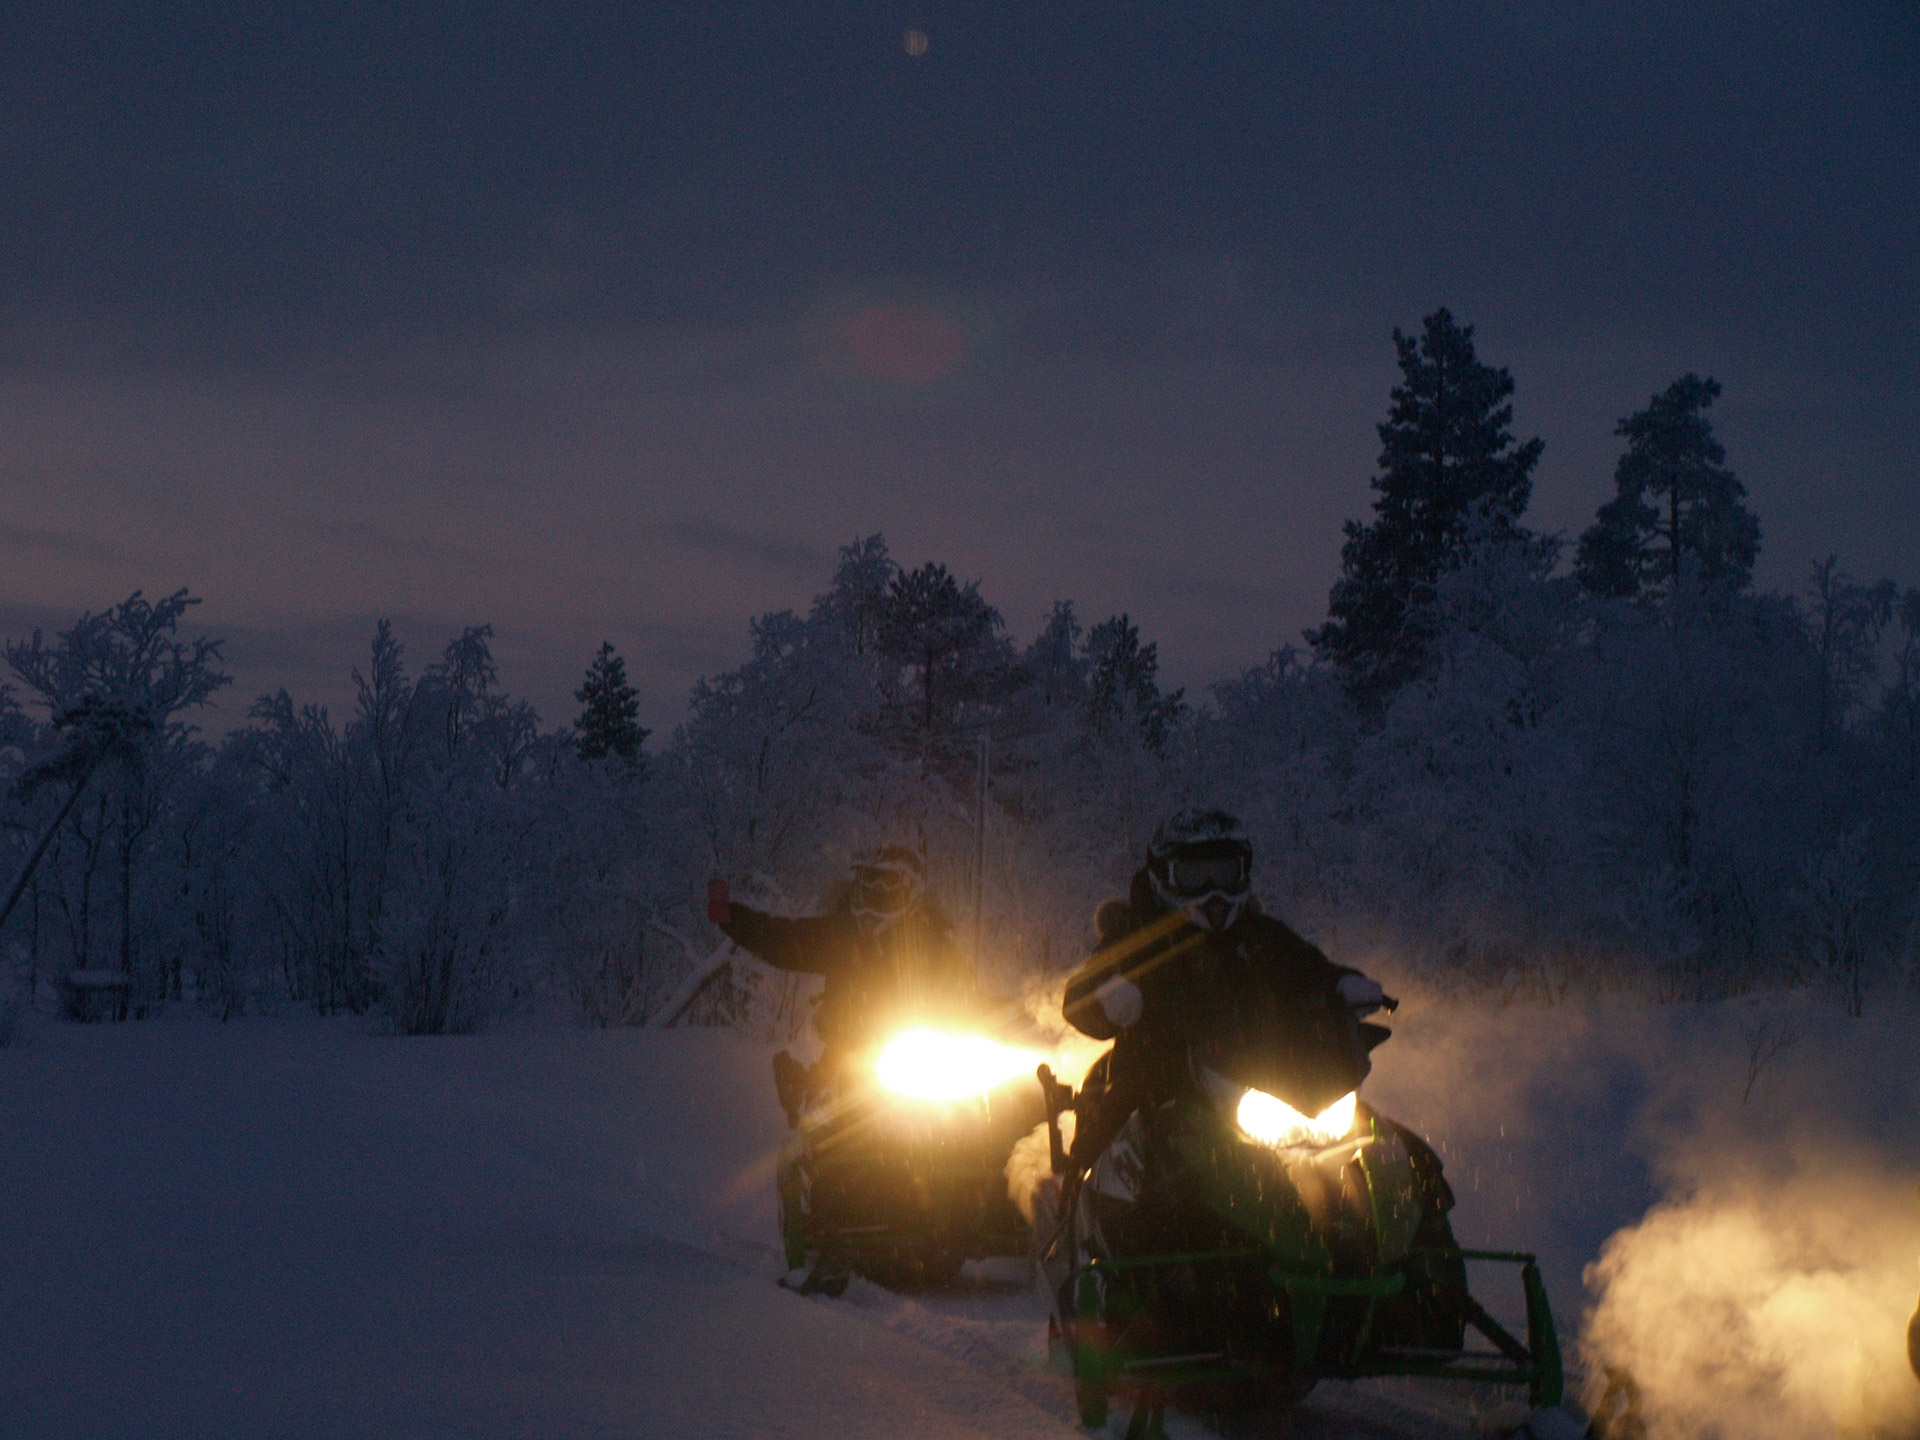 Returning from Snowmobile safari